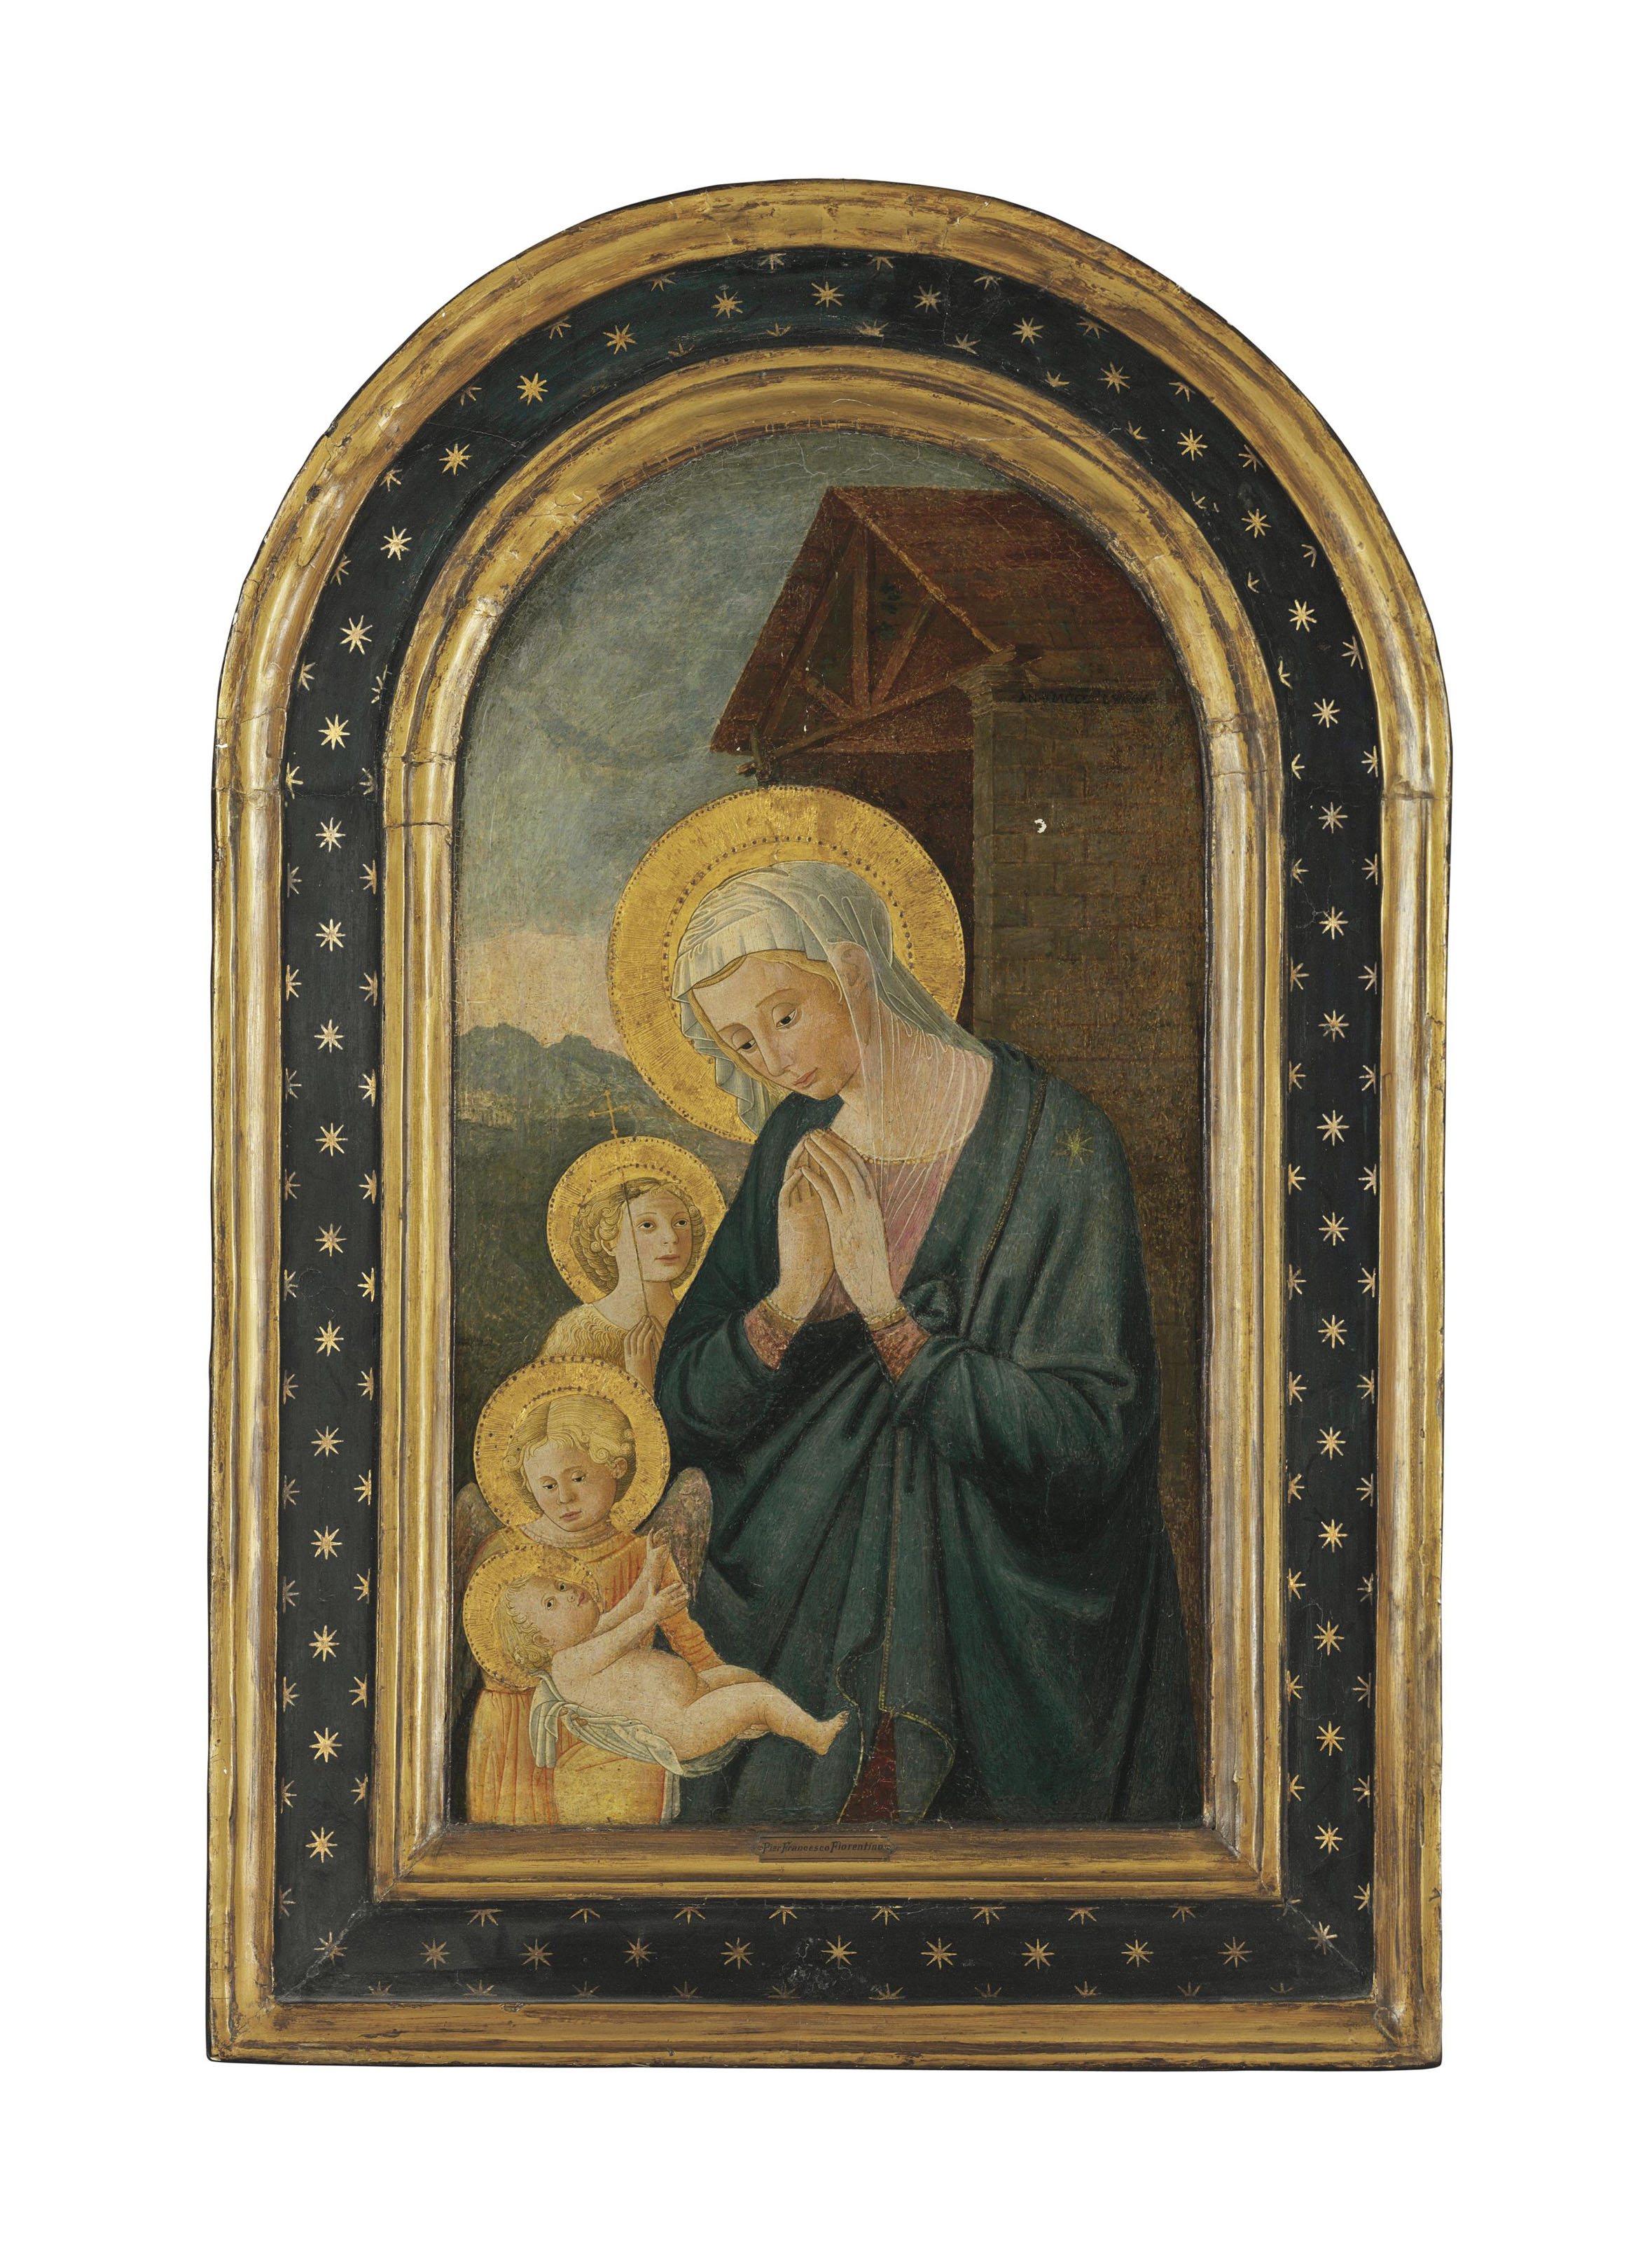 The Madonna and Child with Saint John the Baptist and an angel